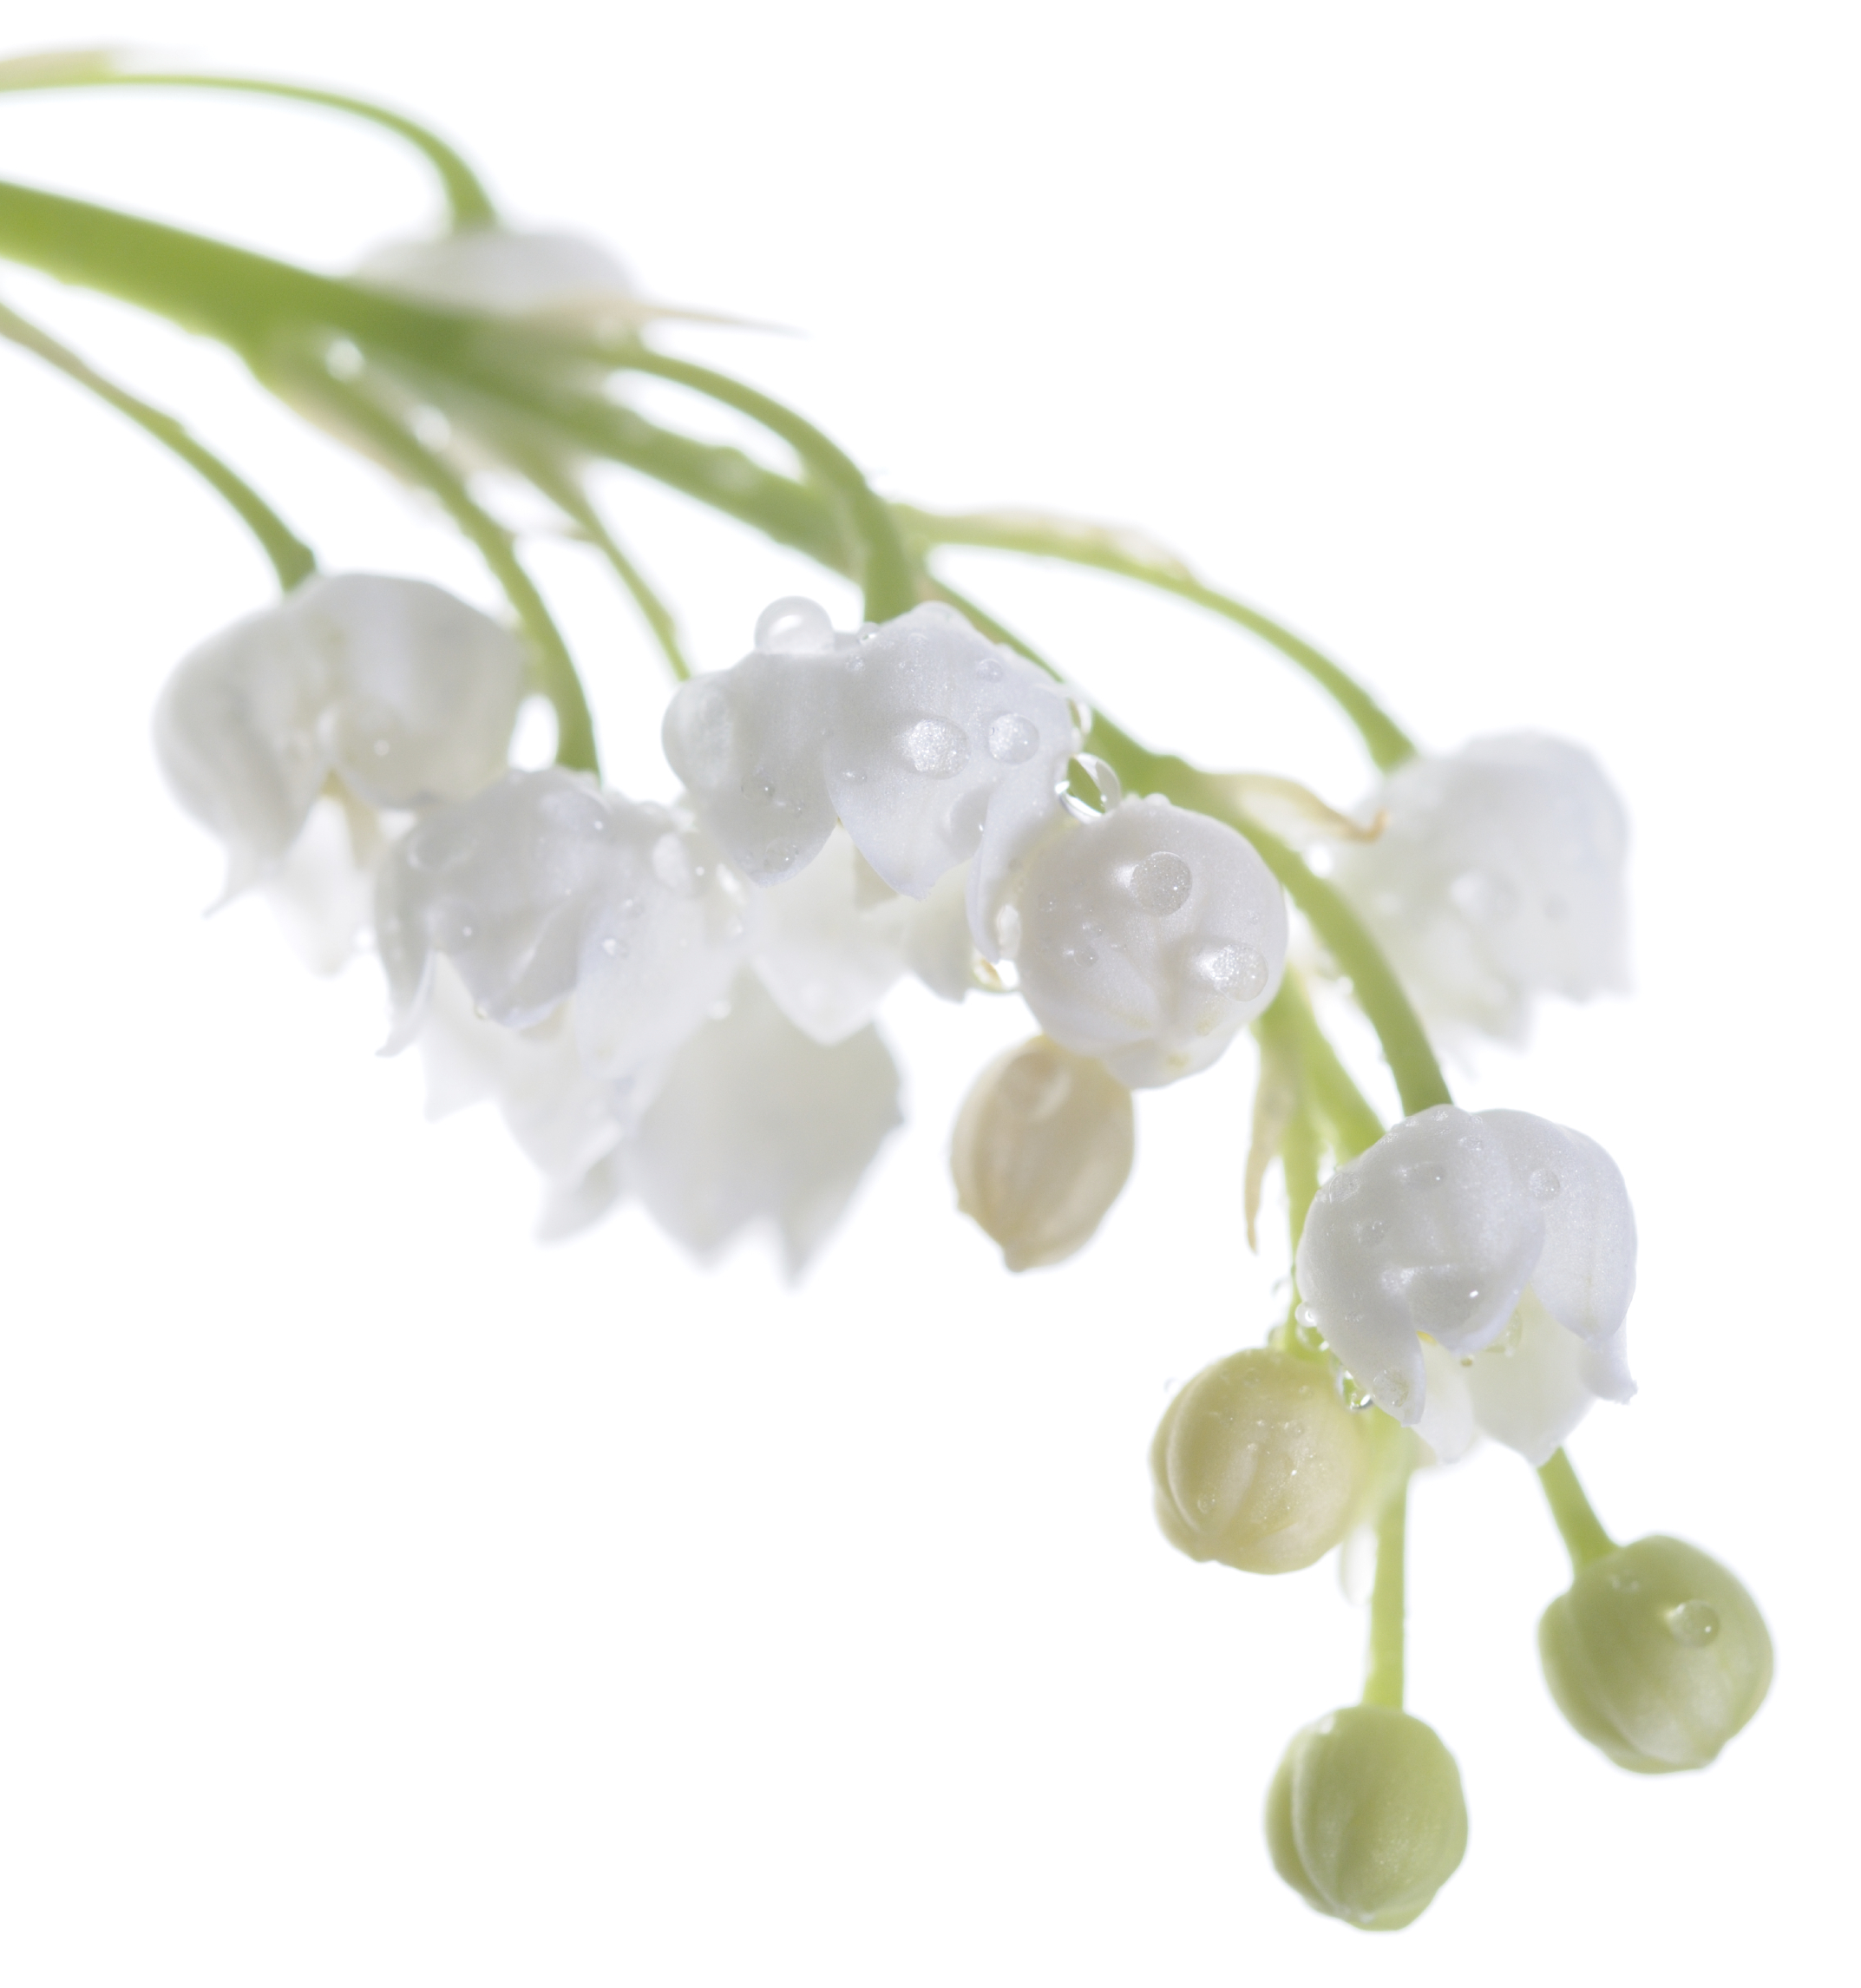 Flower Lily of the Valley May 15778528_Large.jpg